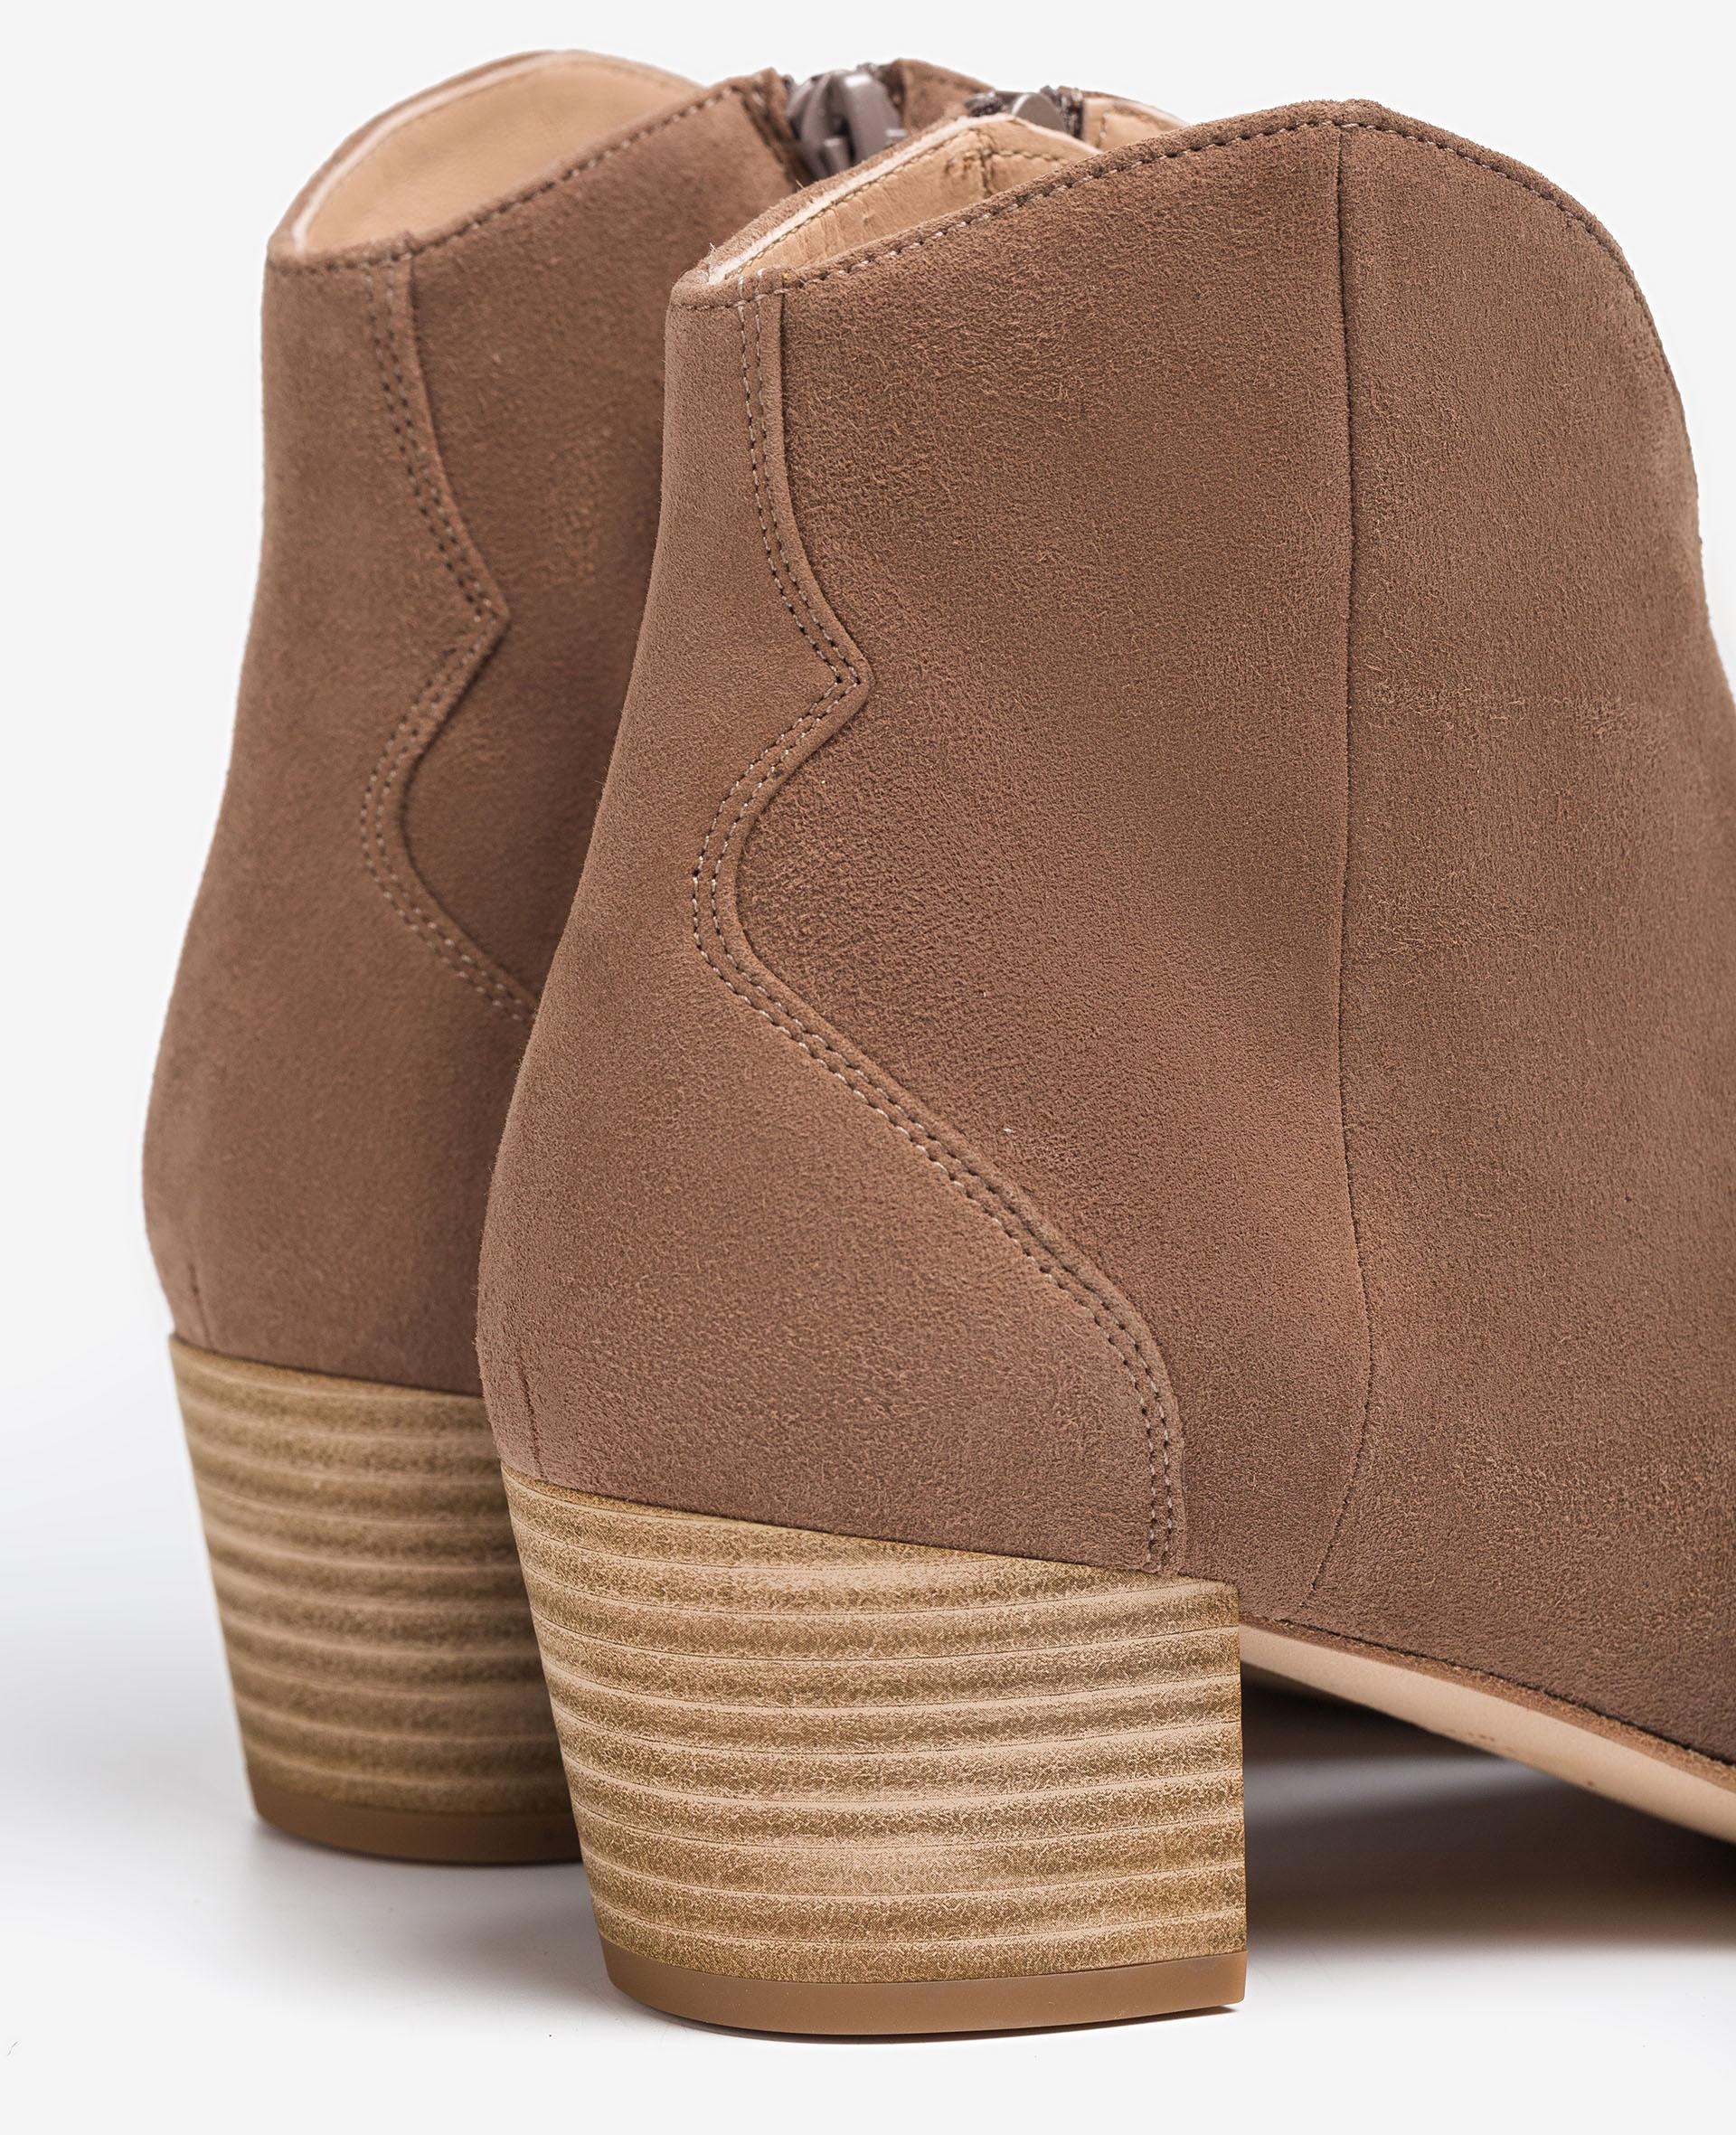 UNISA Cowboy ankle boots with wooden effect heel GRITO_KS 2